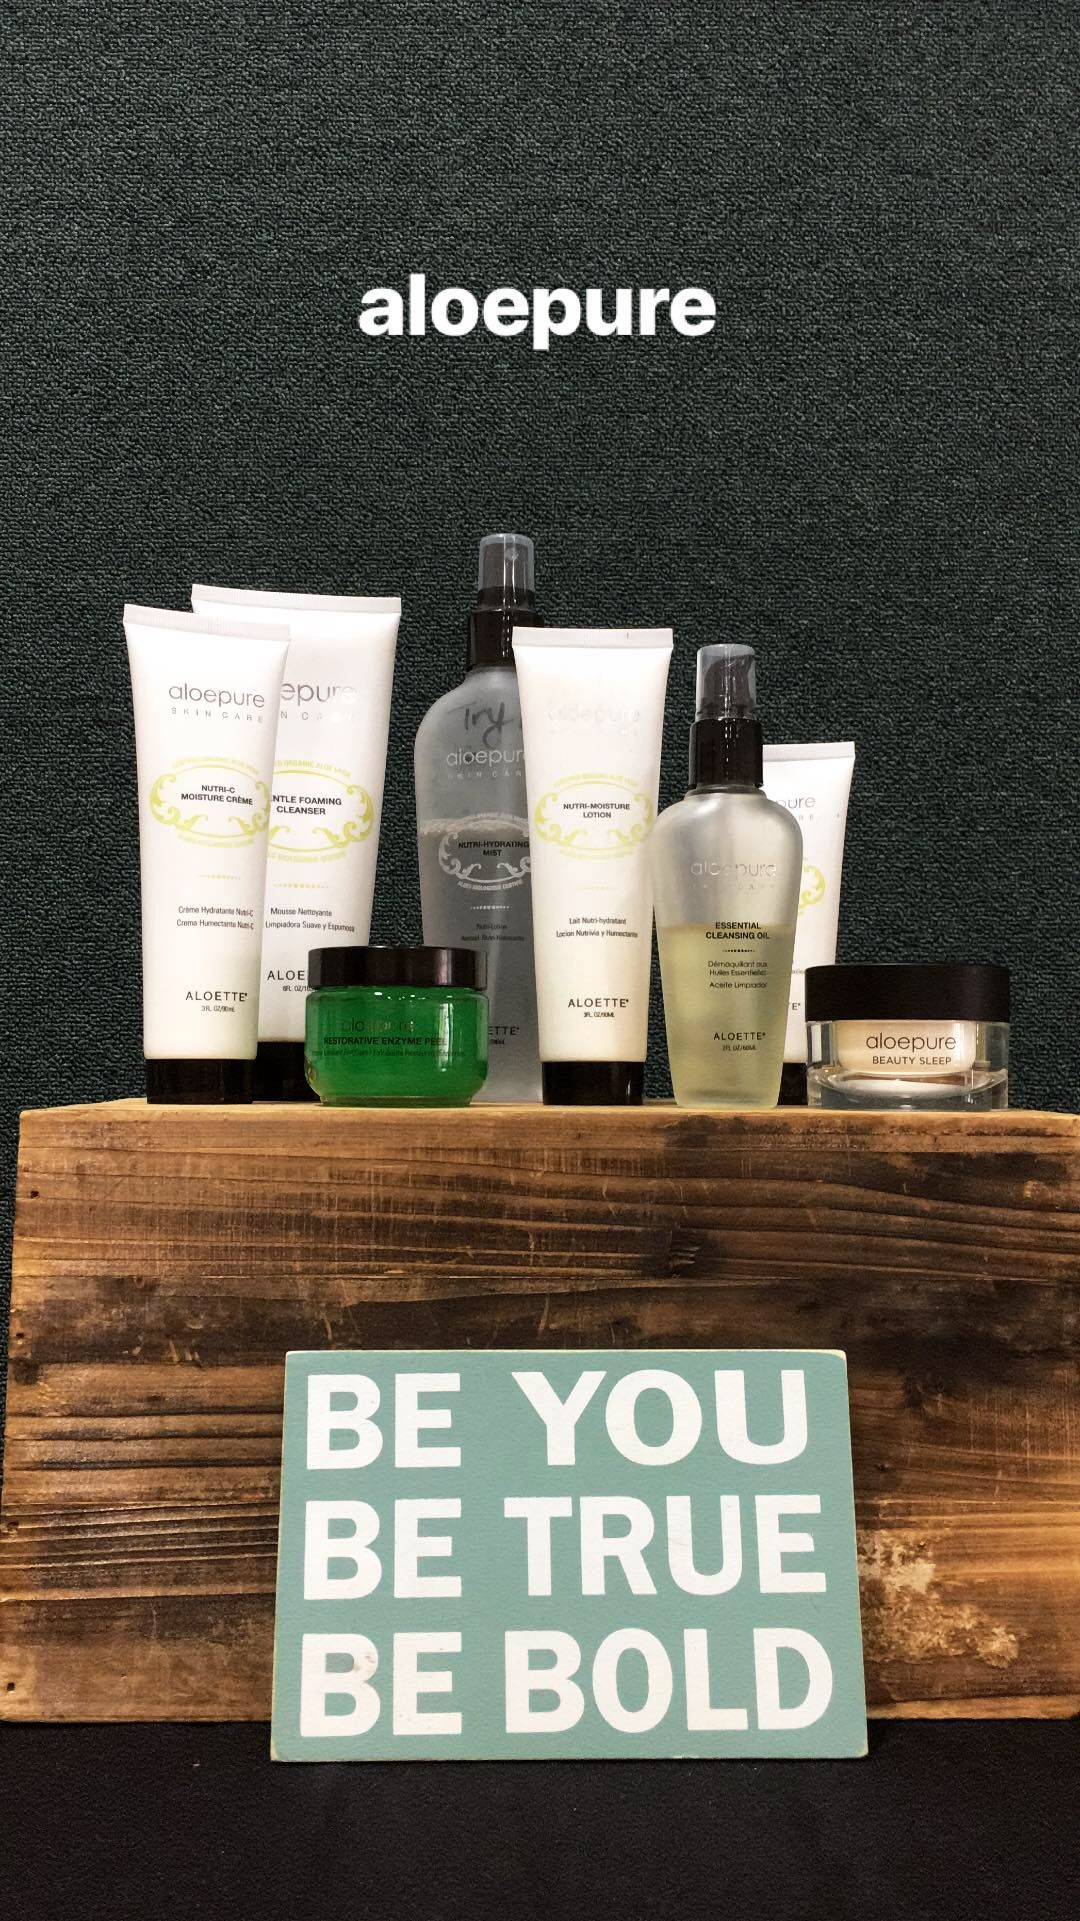 Revive Tired Skin And Keep The Effects Of Aging At Bay With The Aloepure Plus Package Designed To Pr Cruelty Free Skin Care Aloe Vera Skin Care Skin Care Quiz